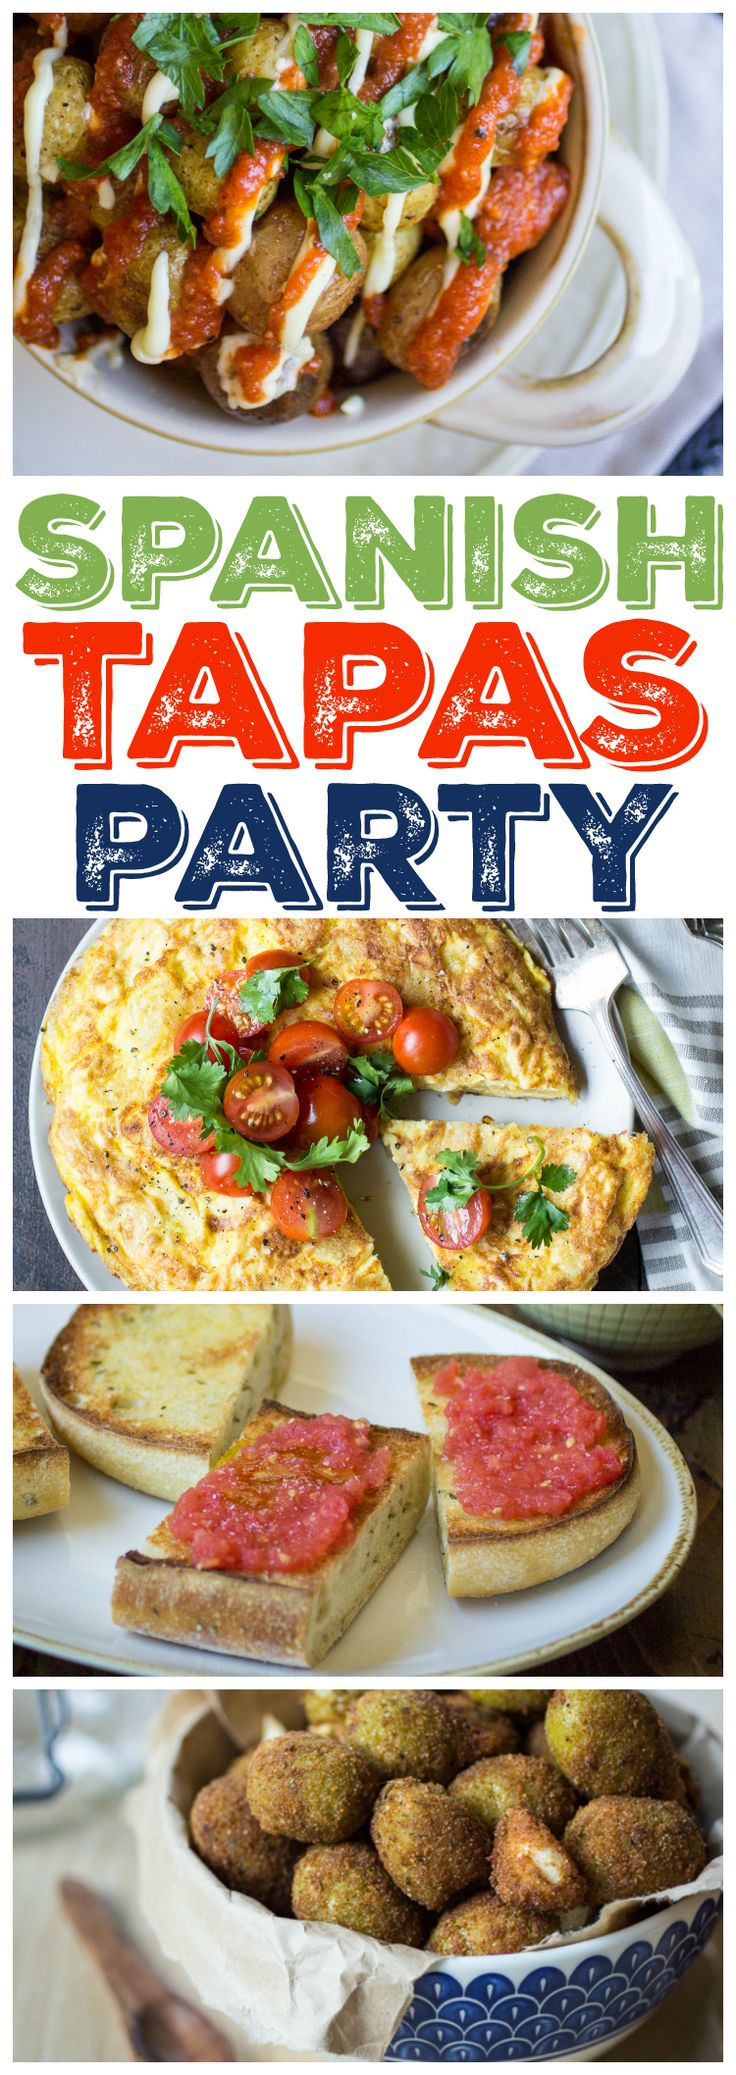 Tapas parties are a fun and easy way to plan a night with family and friends. Make the recipes ahead of time, set the table, and keep the red wine flowing!